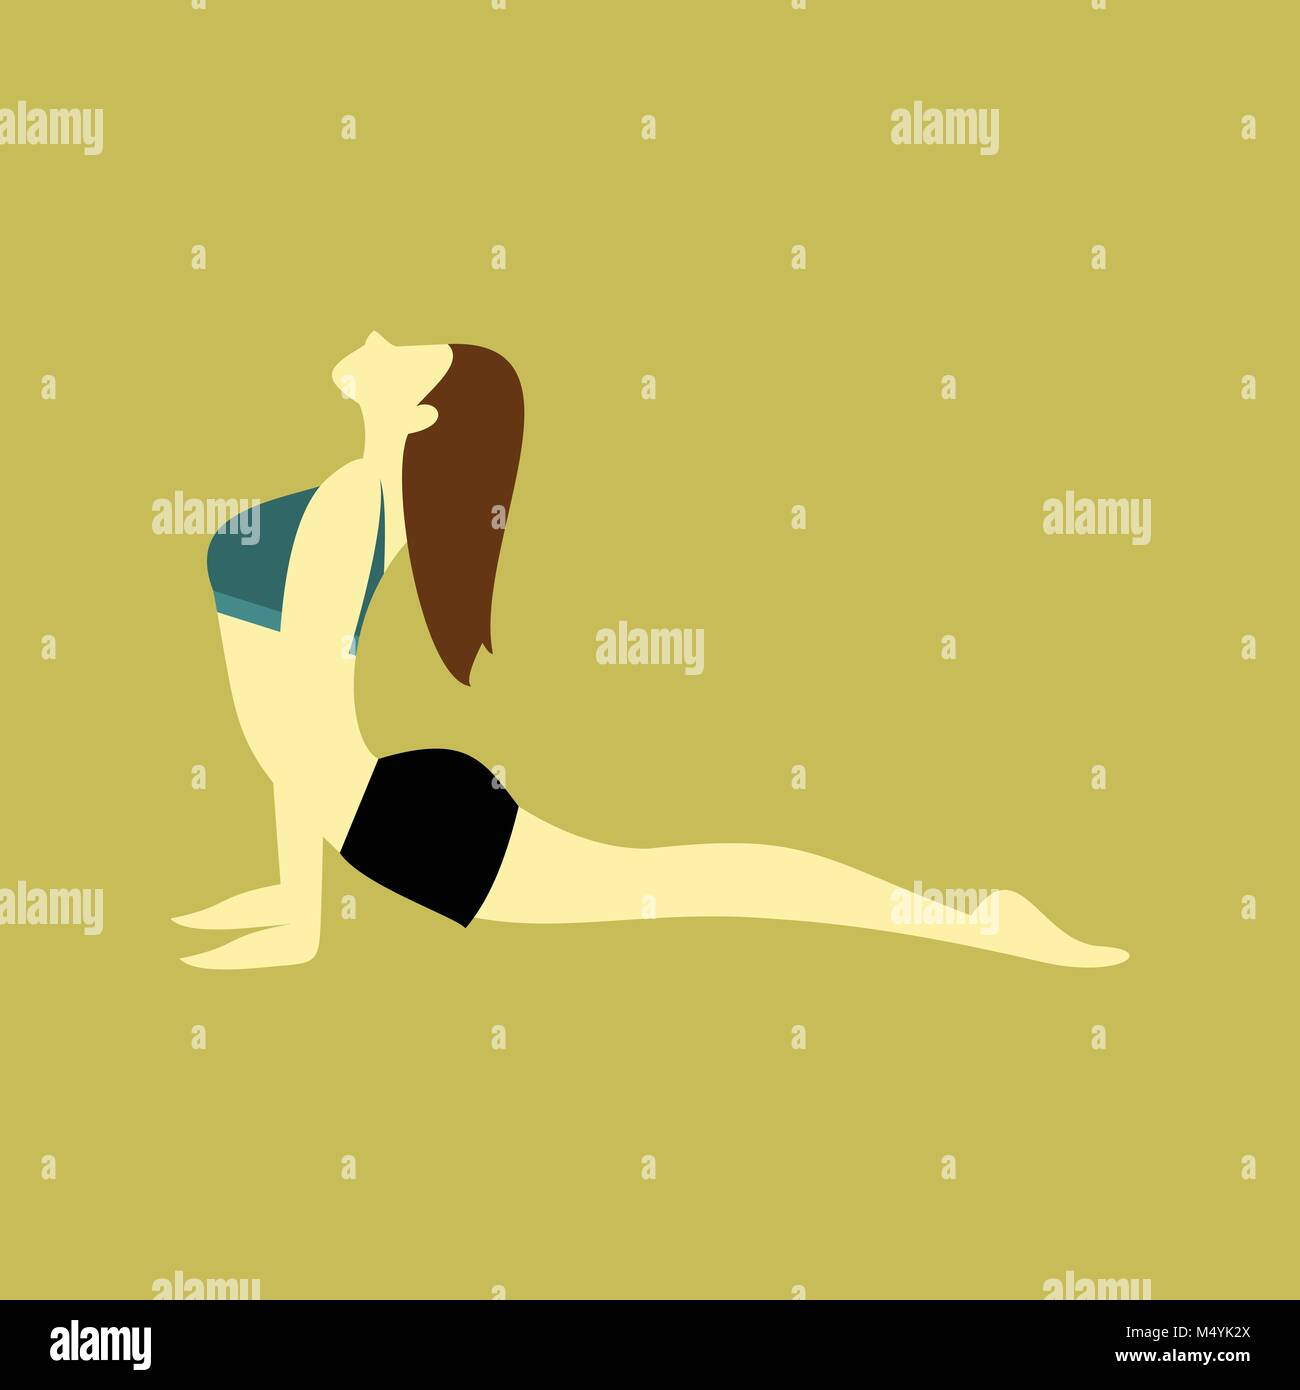 King Pigeon Pose Yoga Posture Illustration - Stock Vector